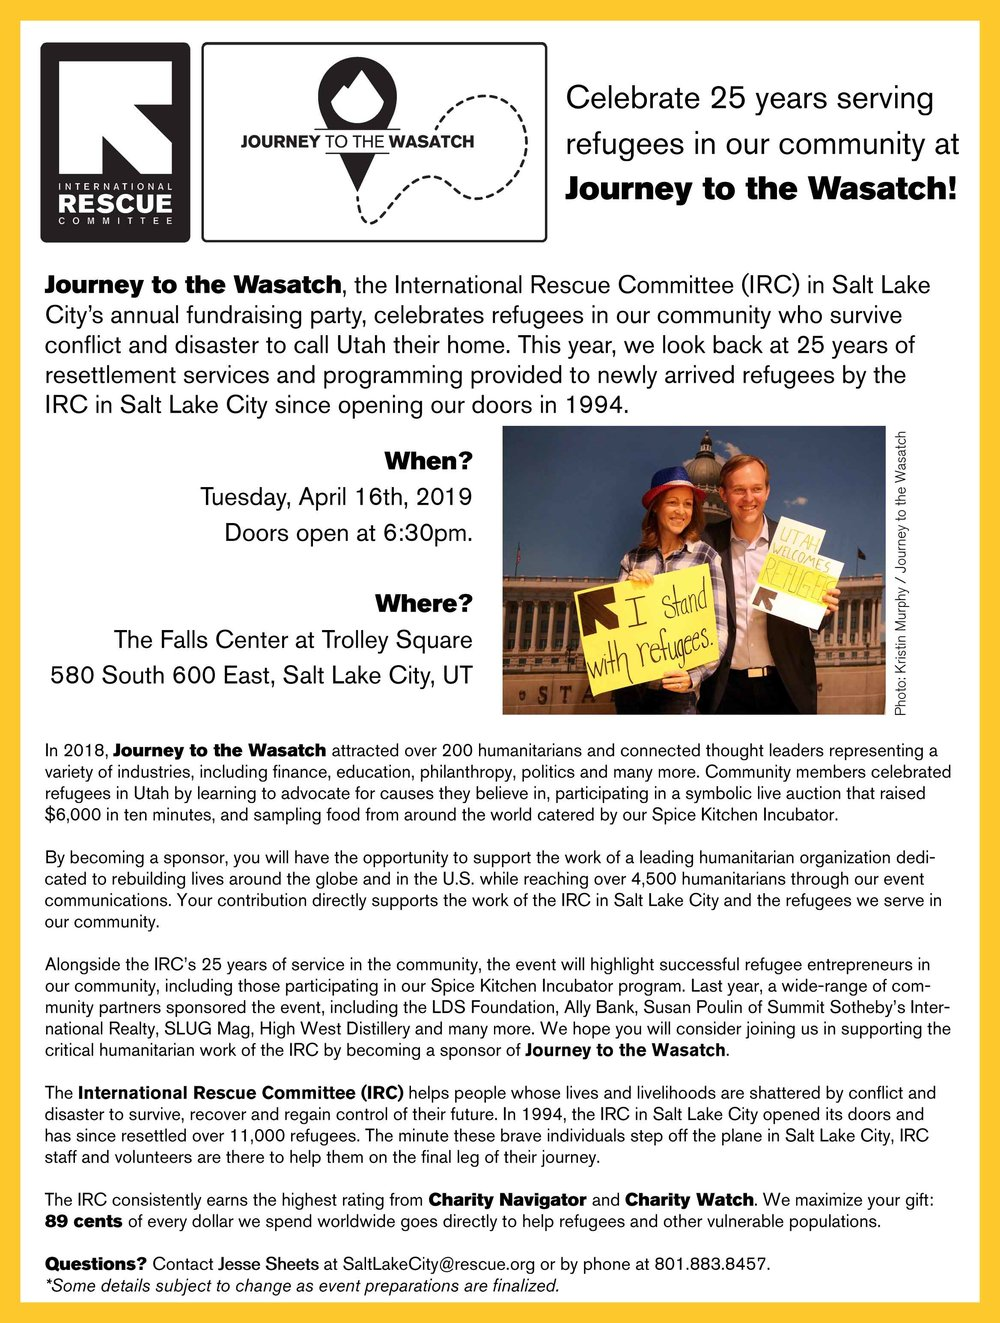 IRC-SLC Journey to the Wasatch 2019 - Sponsorship Opportunities - Page 1